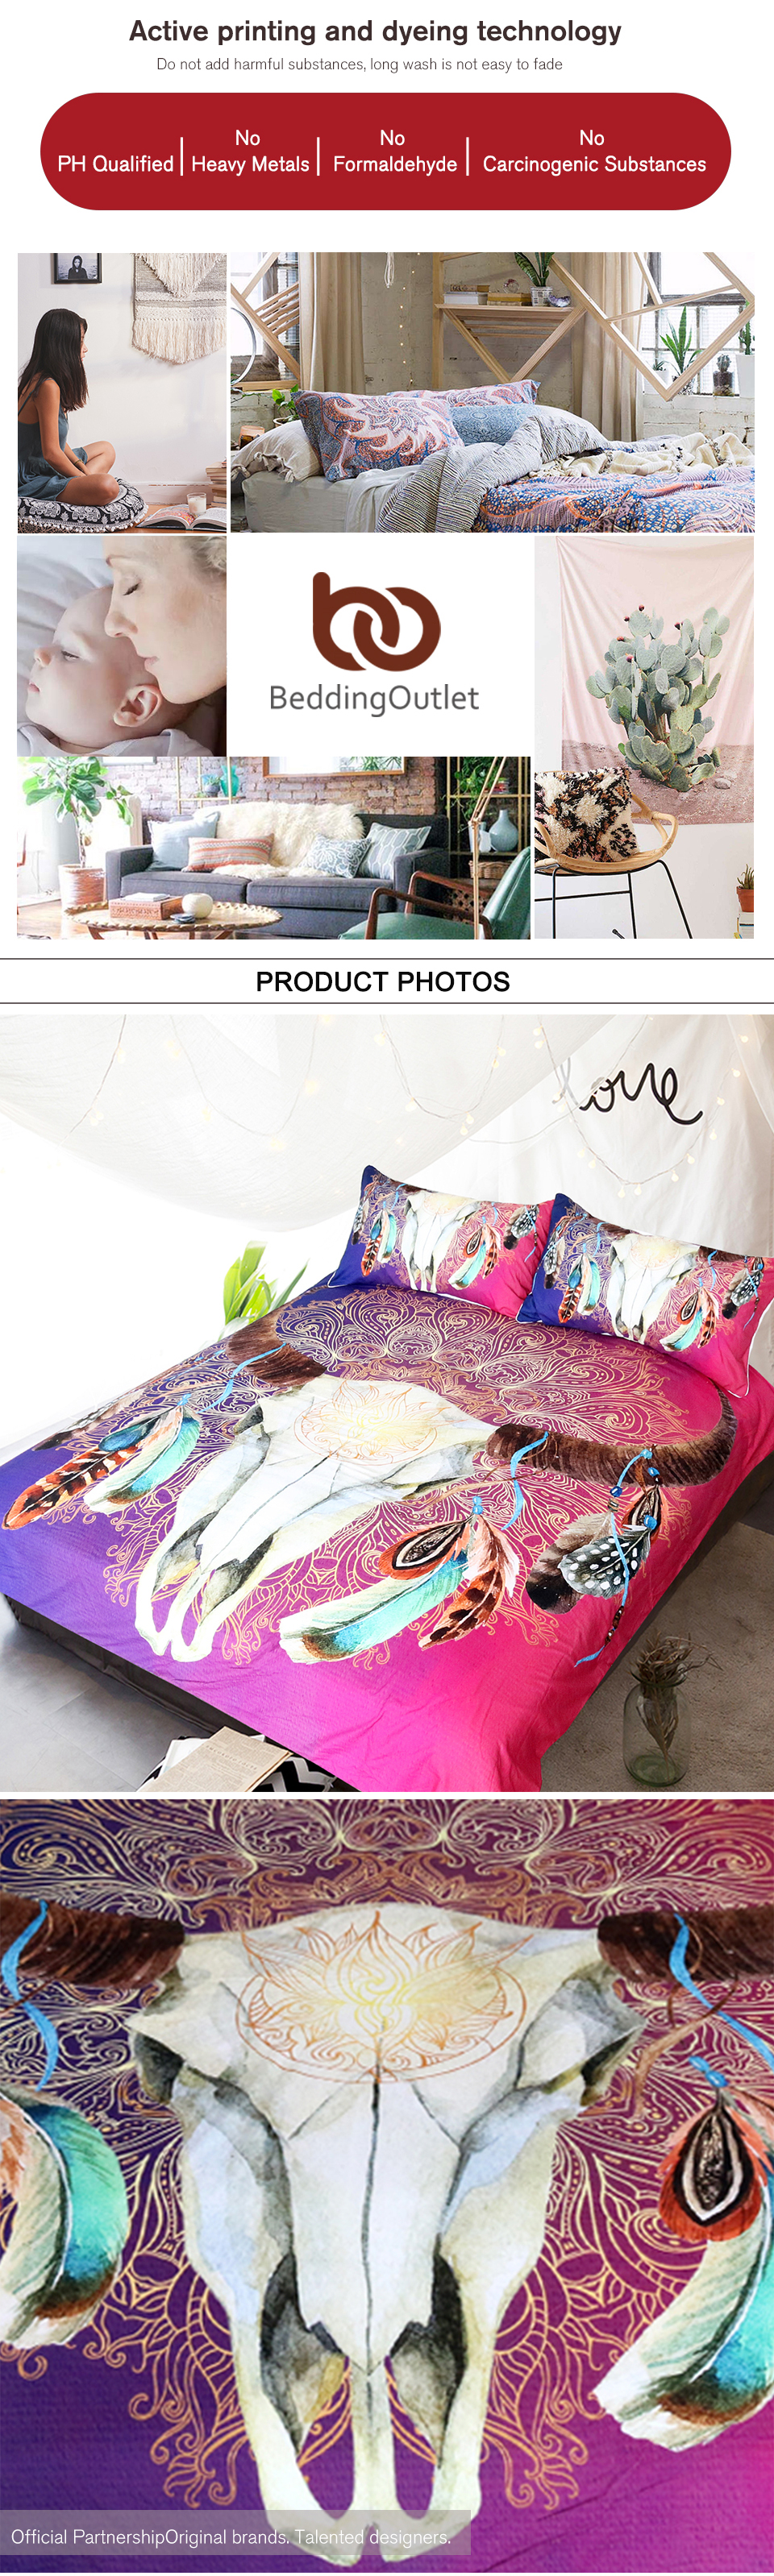 steel nongzi e tumblr comforter co soft pink gray sheets white placed pattern the tribal bed floral on print shabby with